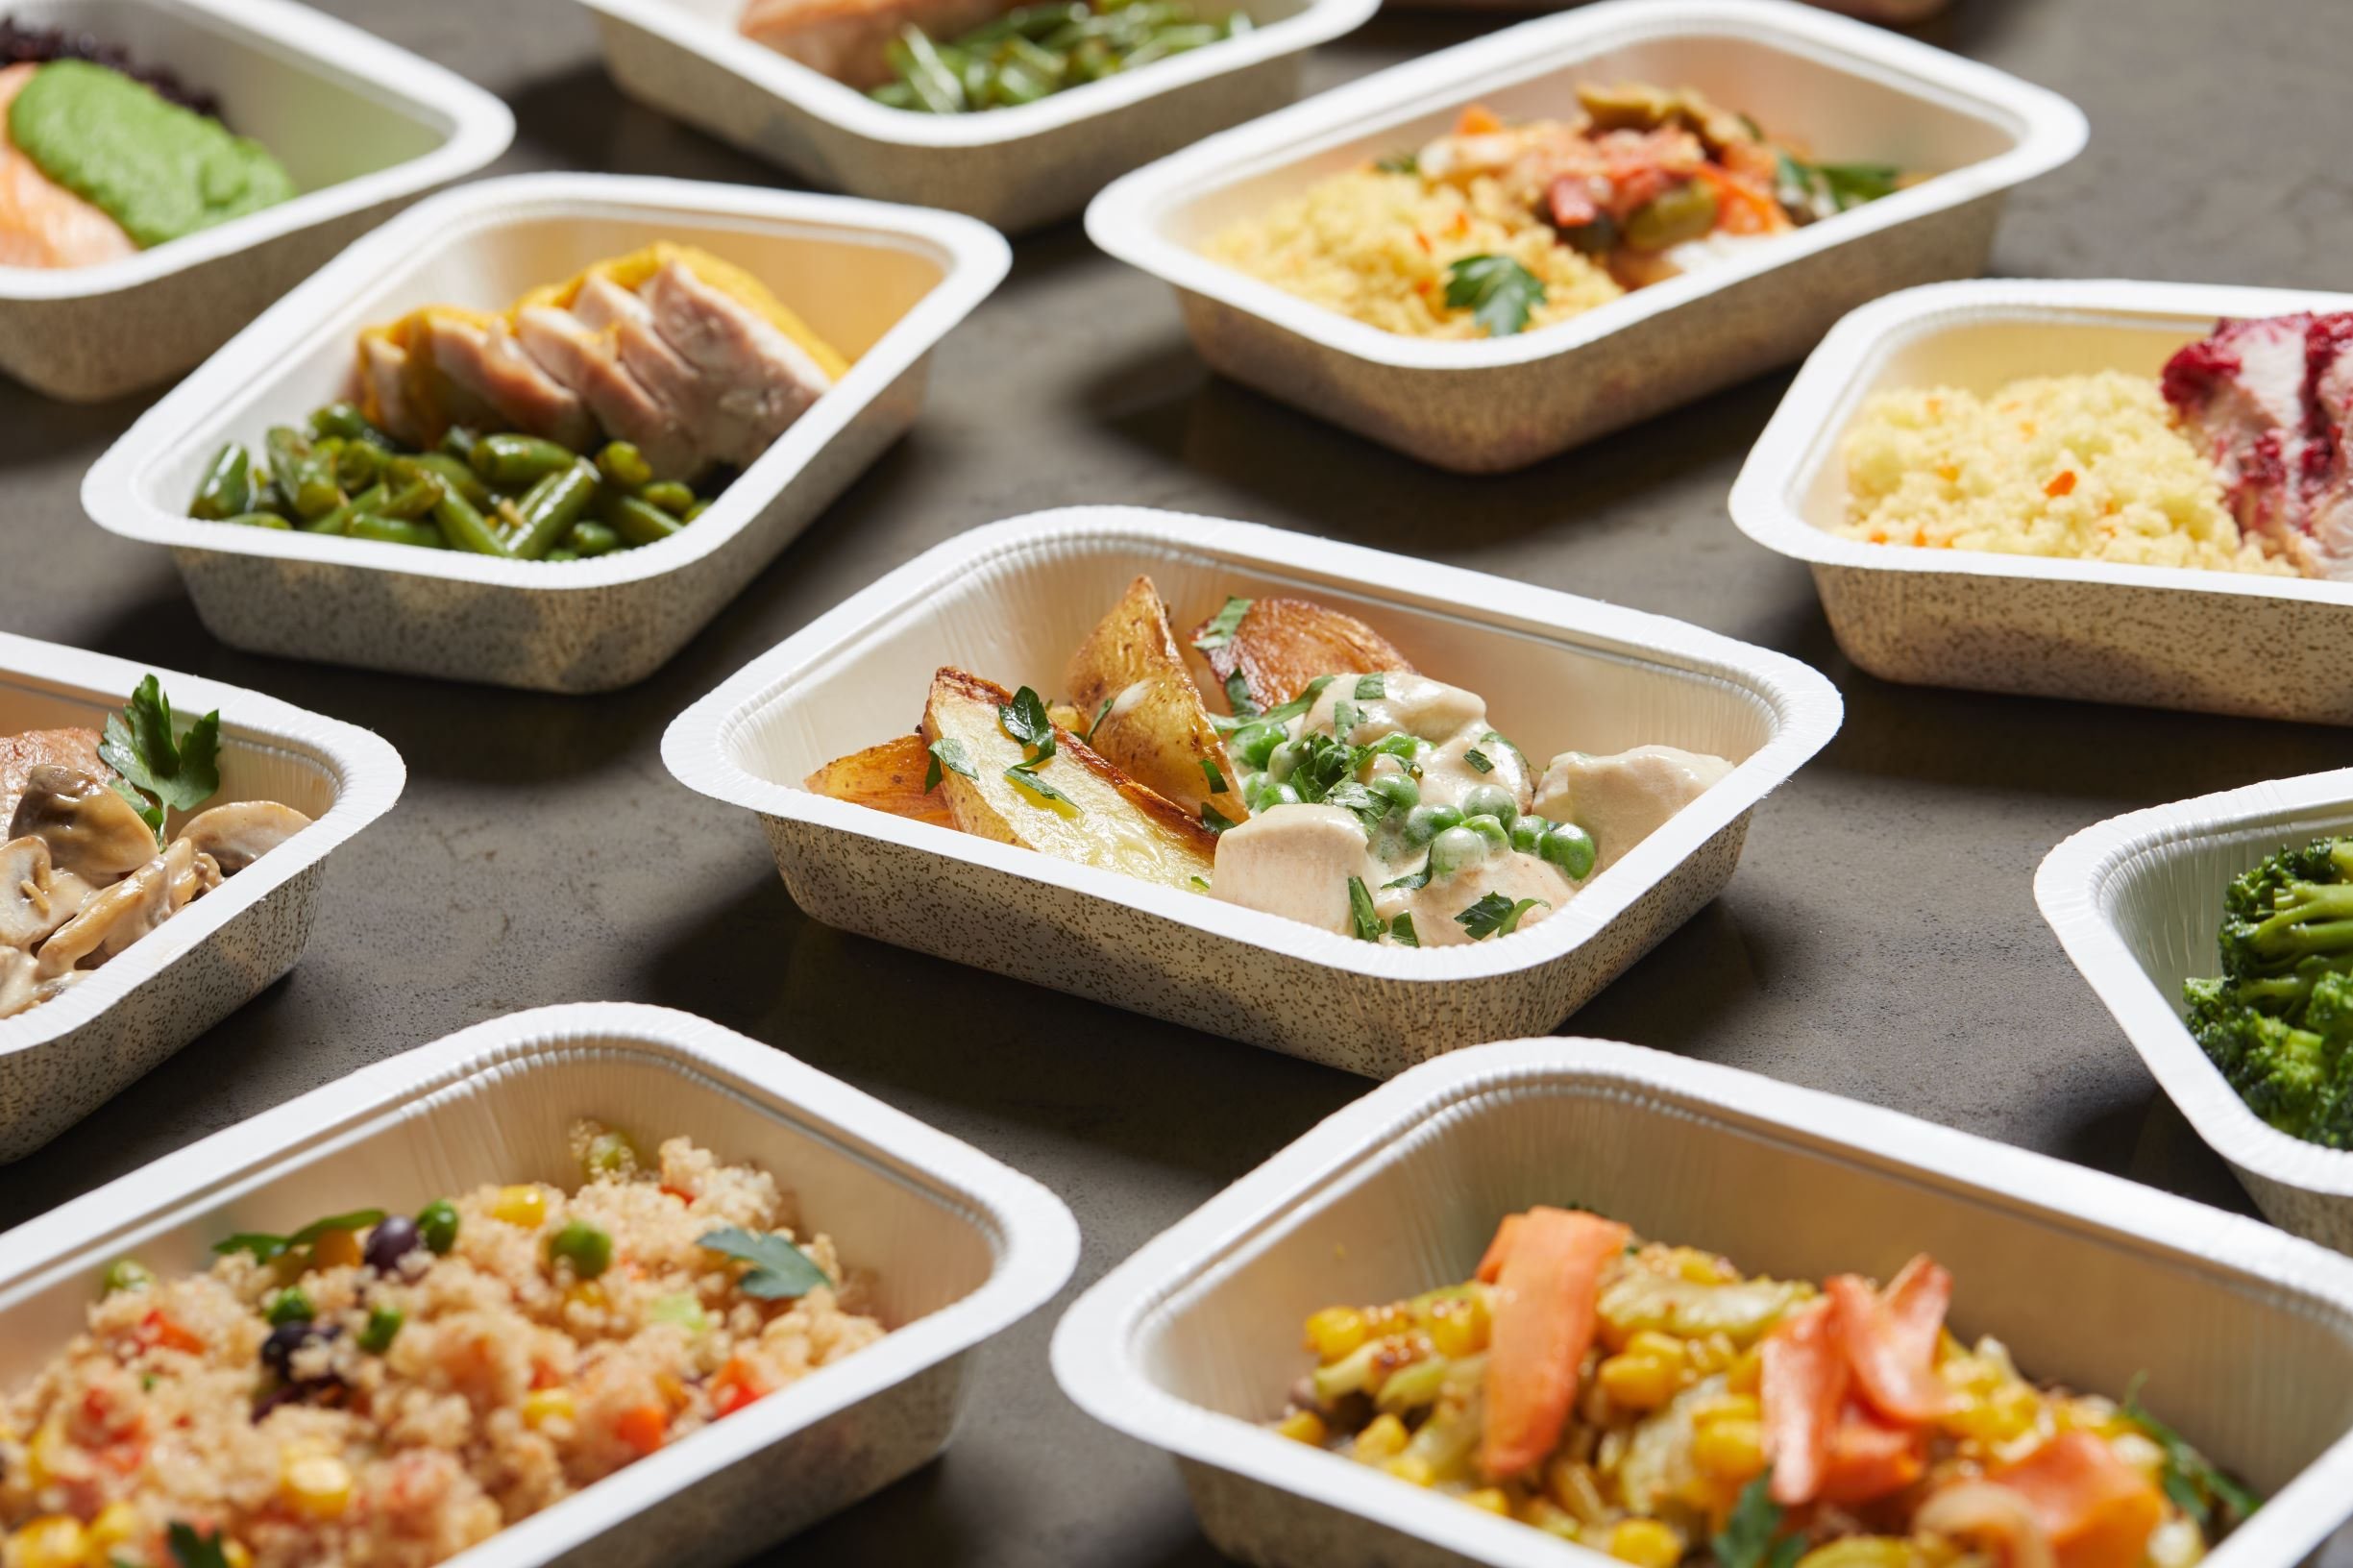 How do take-aways and pre-cooked meals adhere to Coronavirus safety measures?